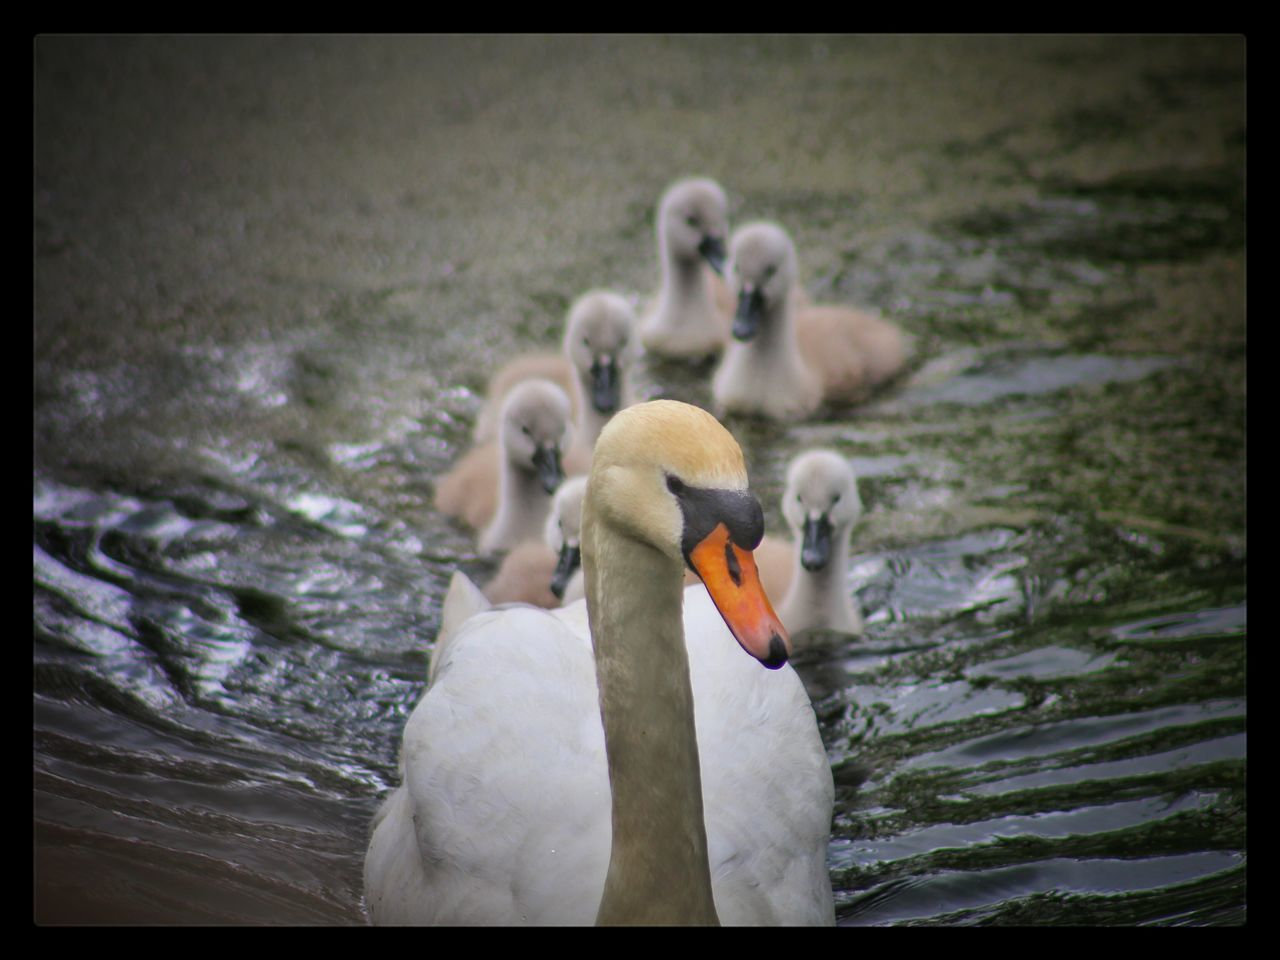 Lagan Canal Moira Swans Signets Our Best Pics EyeEm Nature Lover EyeEm Gallery Natures Magic The Great Outdoors - 2016 EyeEm Awards Exceptional Photographs The Essence Of Summer EyeEm Best Shots - Nature EyeEm Best Shots Baby Swans Waterfowl EyeEm Birds Springtime Family Of Swans Spring Birds EyeEm Animal Lover Cute Animals Proud Mother Northern Ireland Showcase June